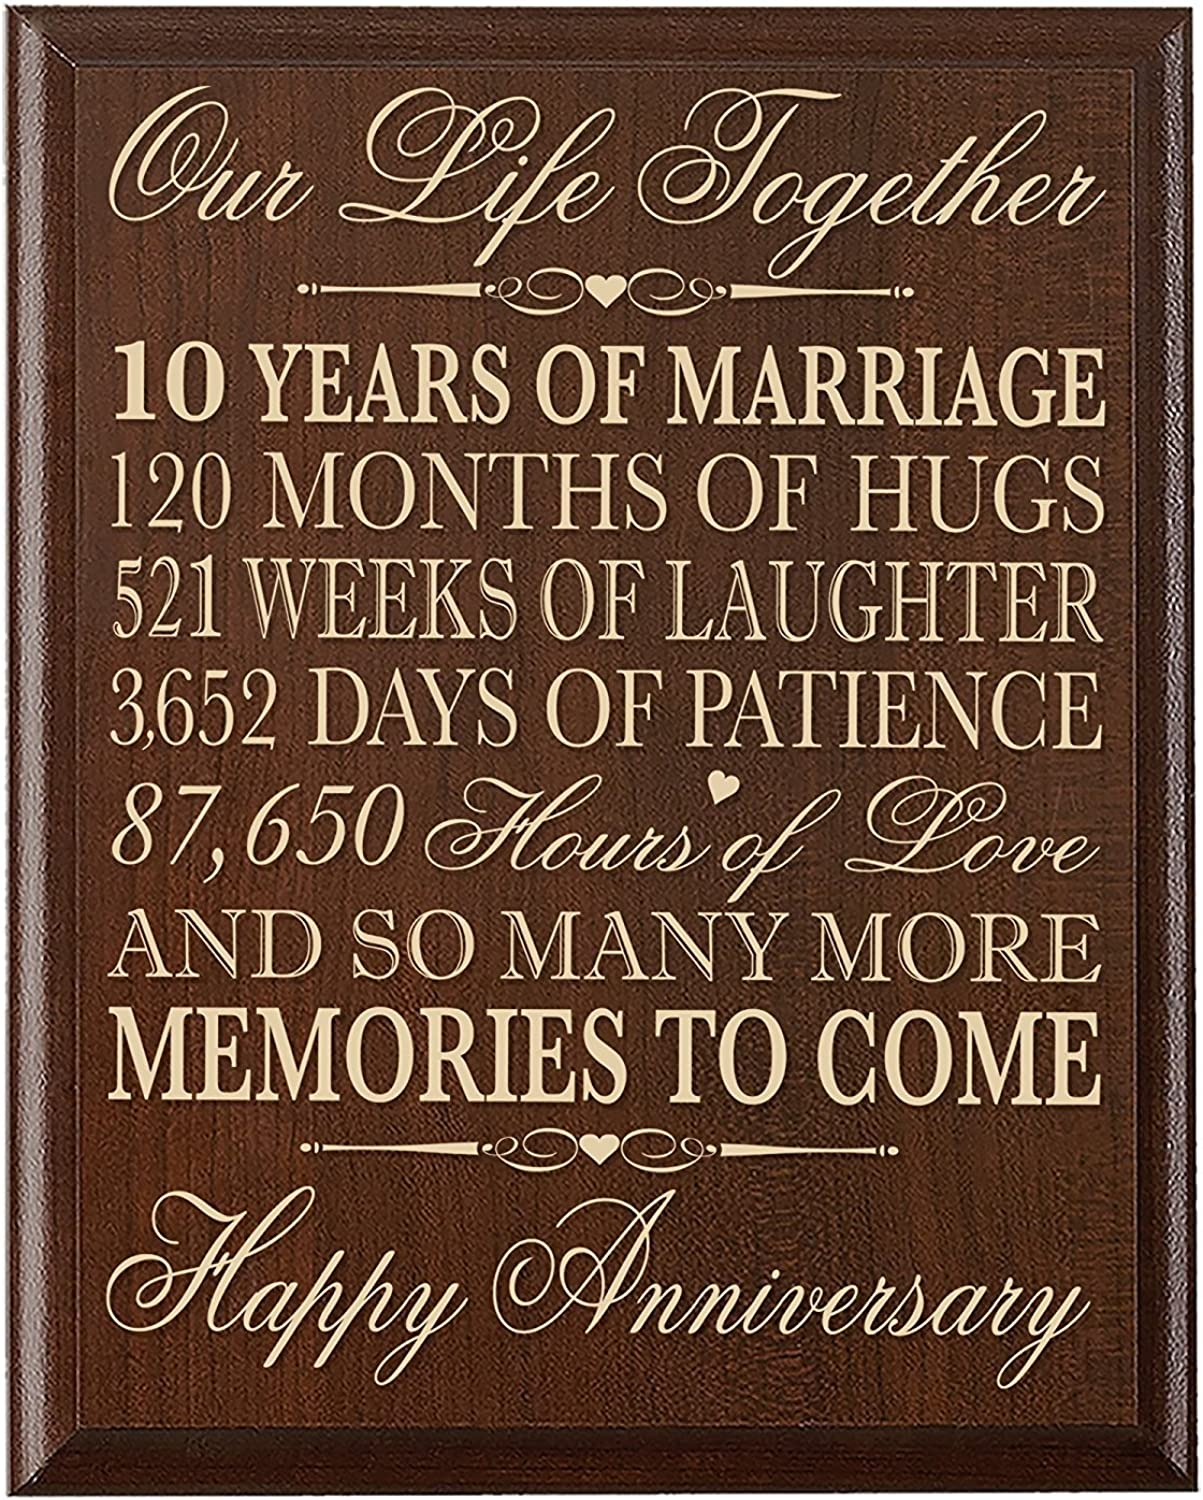 LifeSong Milestones 10th Wedding Anniversary Wall Plaque Gifts for Couple, 10th Anniversary Gifts for Her,10th Wedding Anniversary Gifts for Him 12 Inches Wide X 15 Inches High Wall Plaque By